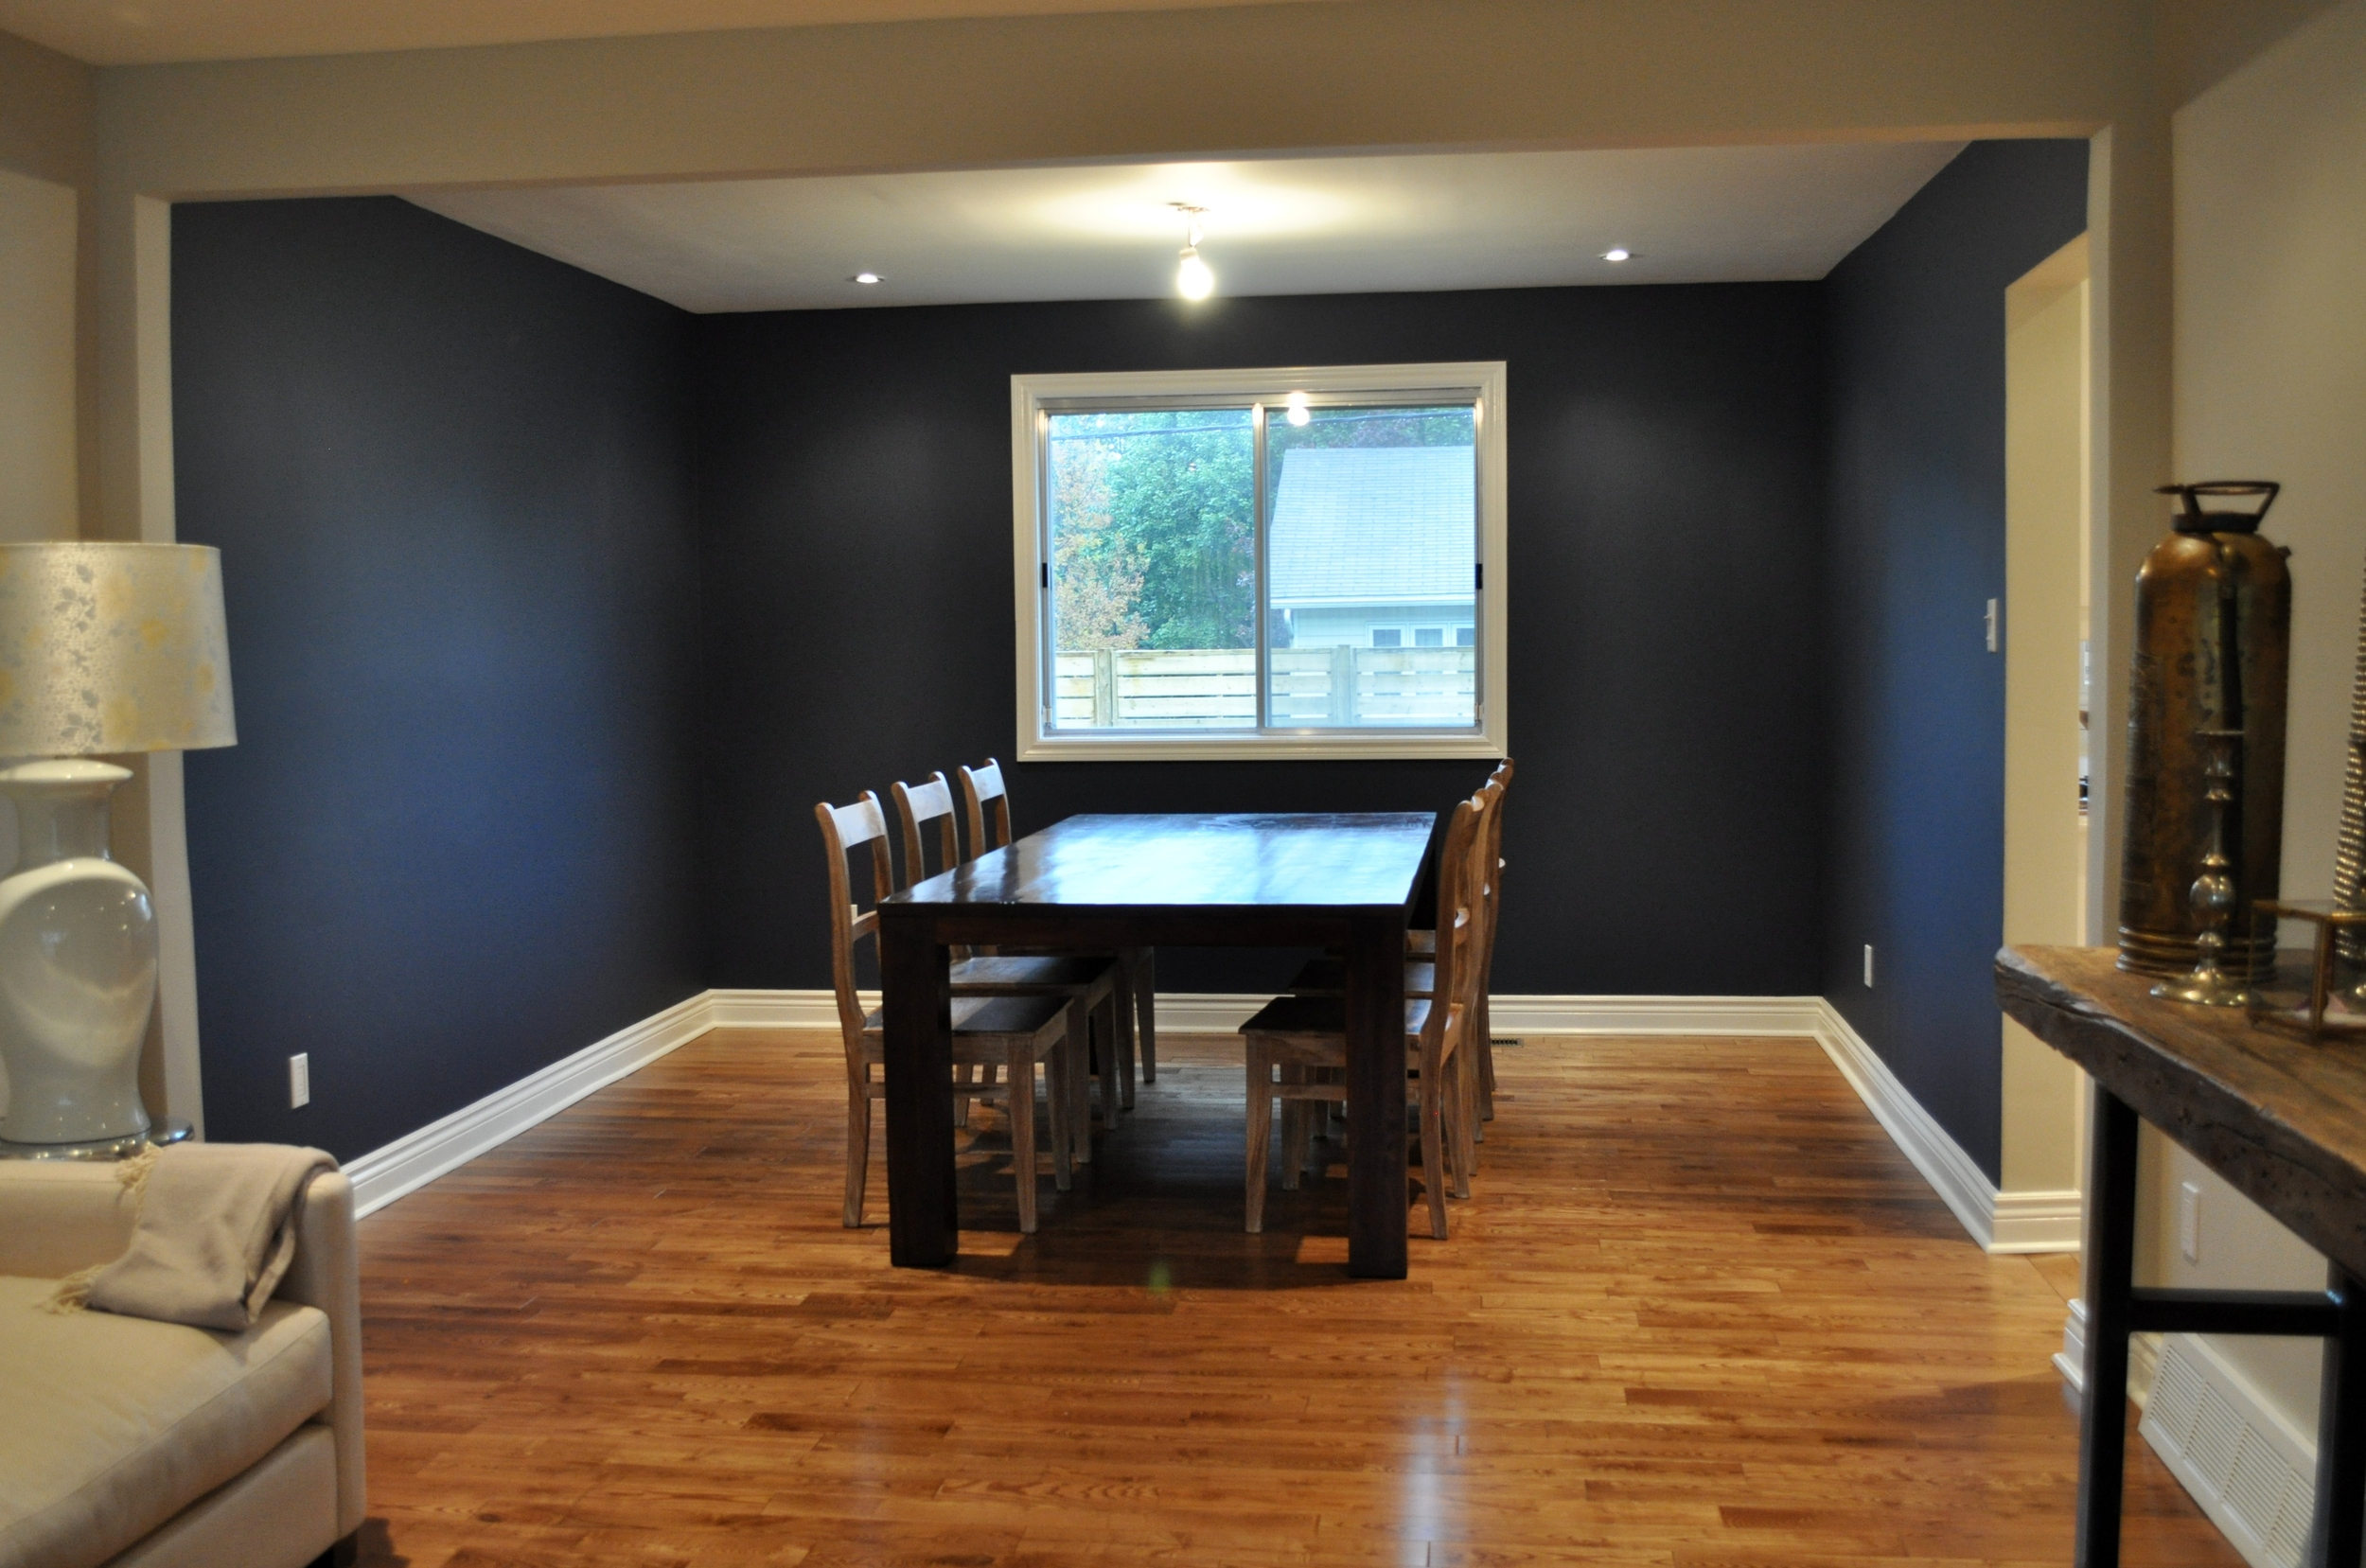 Dining Room, Baseboards completed